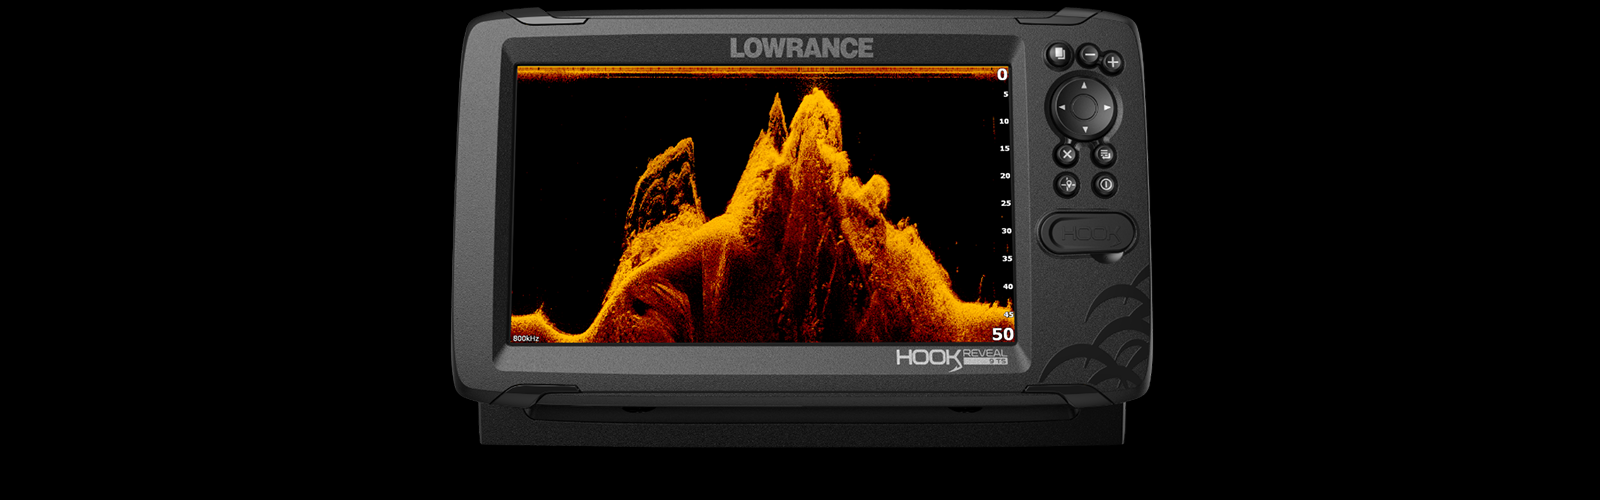 Downscan-Full.png